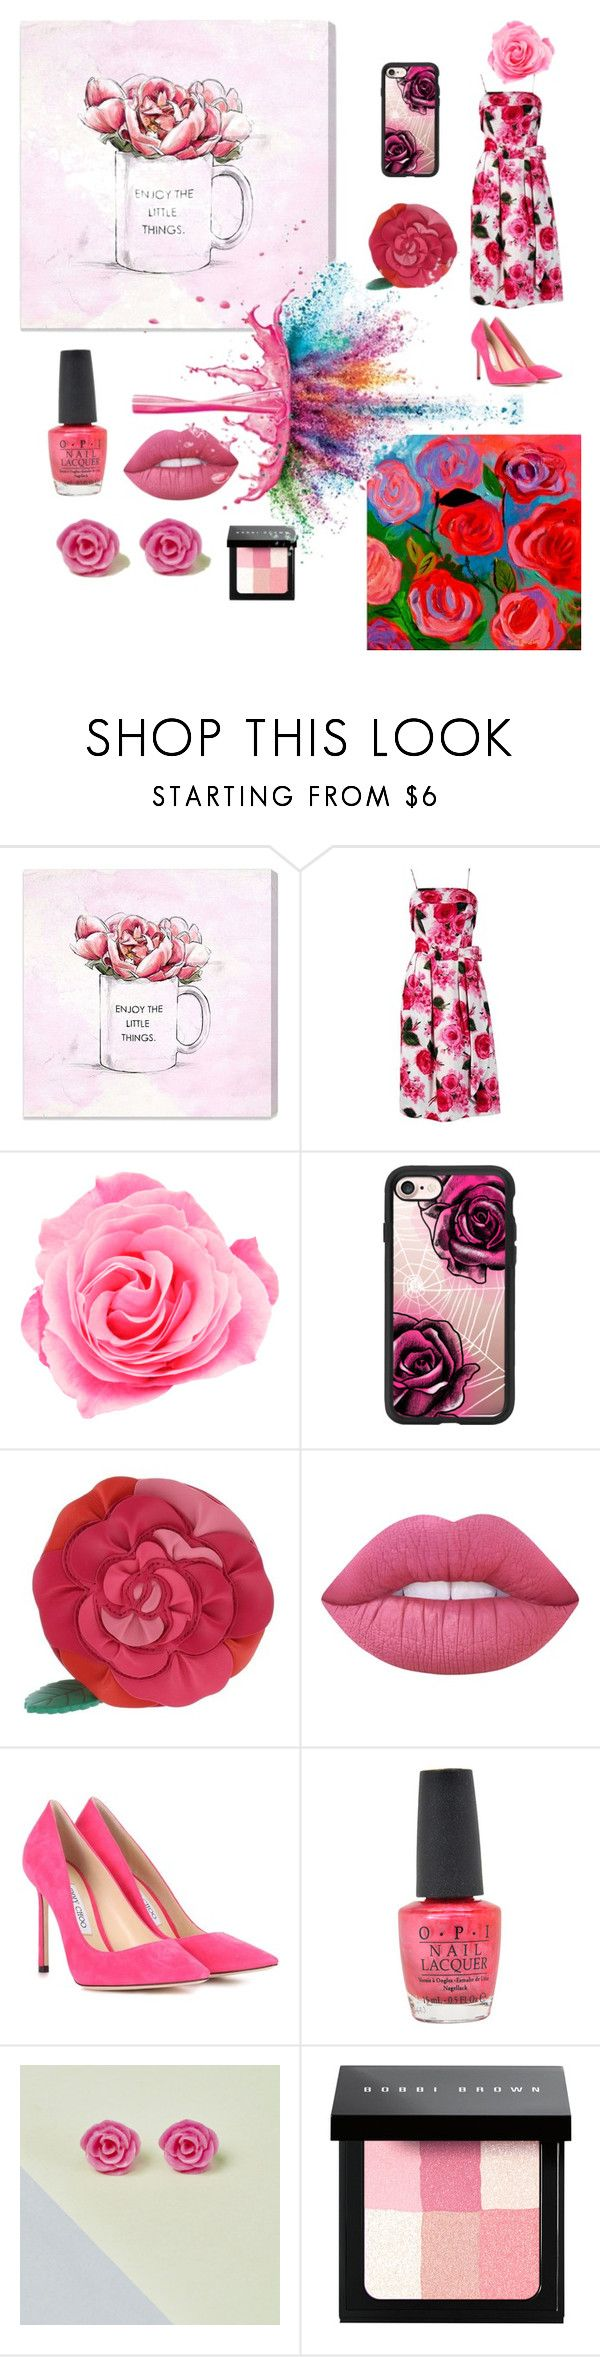 """""""ROSE"""" by jules16280 ❤ liked on Polyvore featuring Oliver Gal Artist Co., Casetify, Kate Spade, Lime Crime, Jimmy Choo, OPI, Bobbi Brown Cosmetics and Givenchy"""